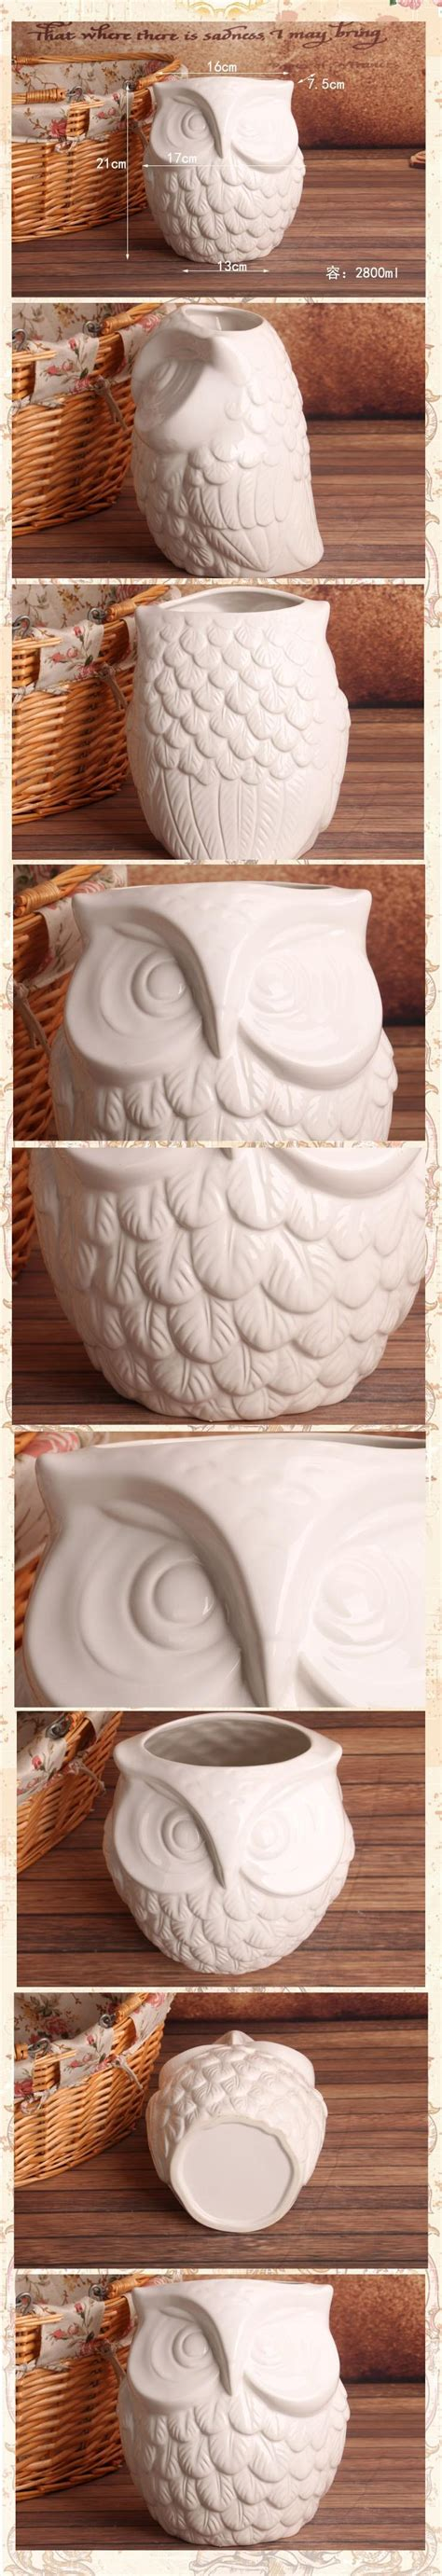 european style coruja ceramica owl home decor owl pot